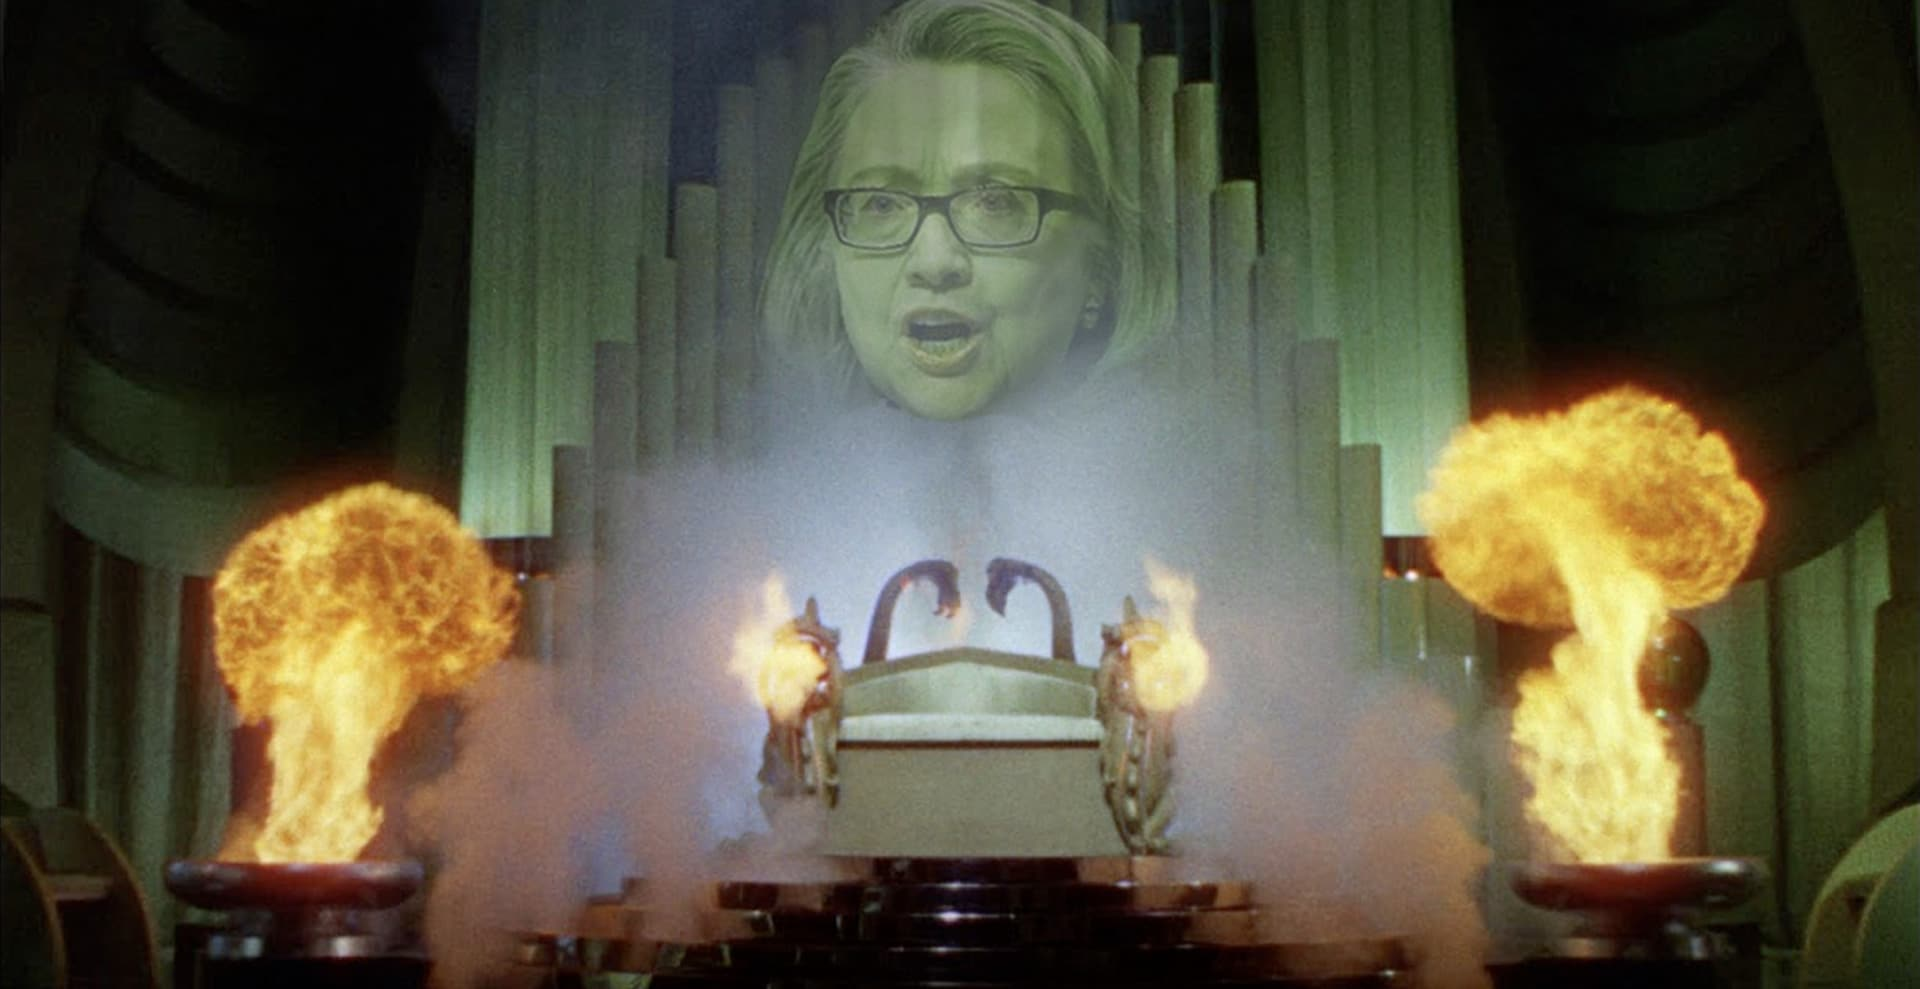 Mike Church Show 050316 Seg. 1-2-It's Official: The Constitution Is D-E-D Dead While Mordor's Oligarch Monster Thrives